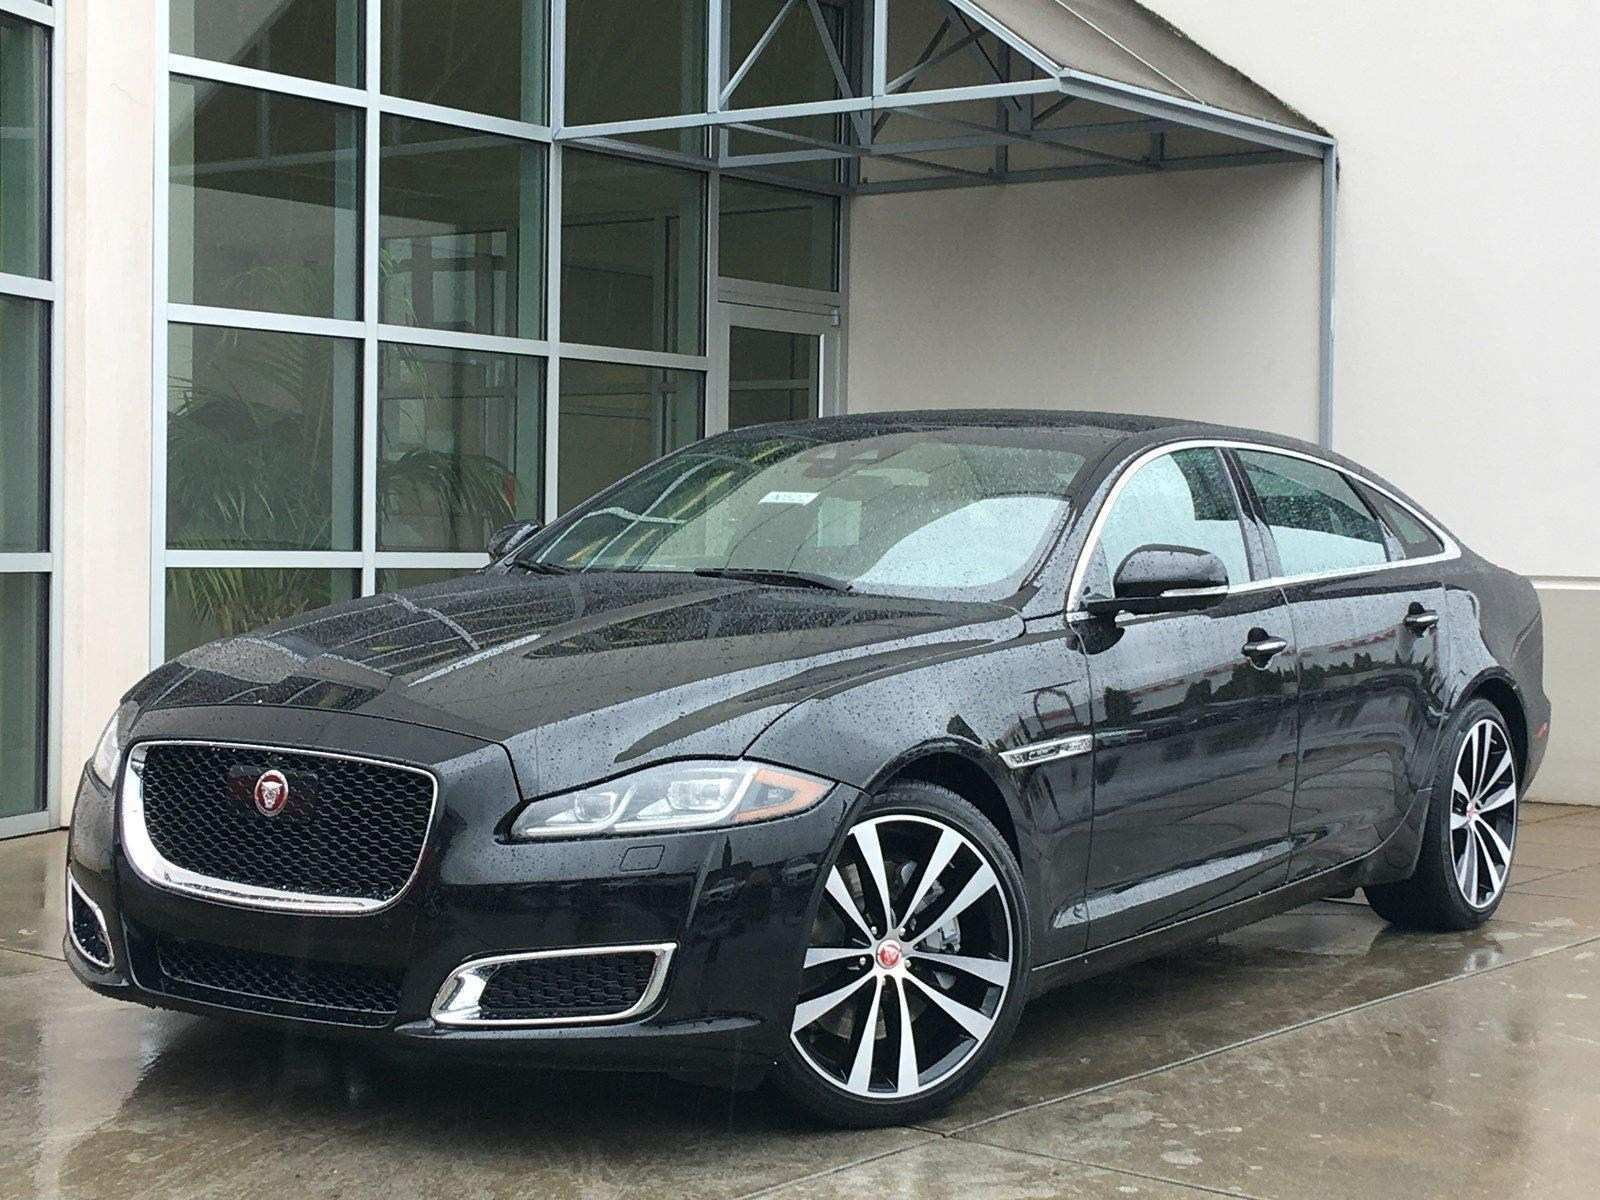 57 All New New Jaguar 2019 Cars Specs And Review Research New with New Jaguar 2019 Cars Specs And Review